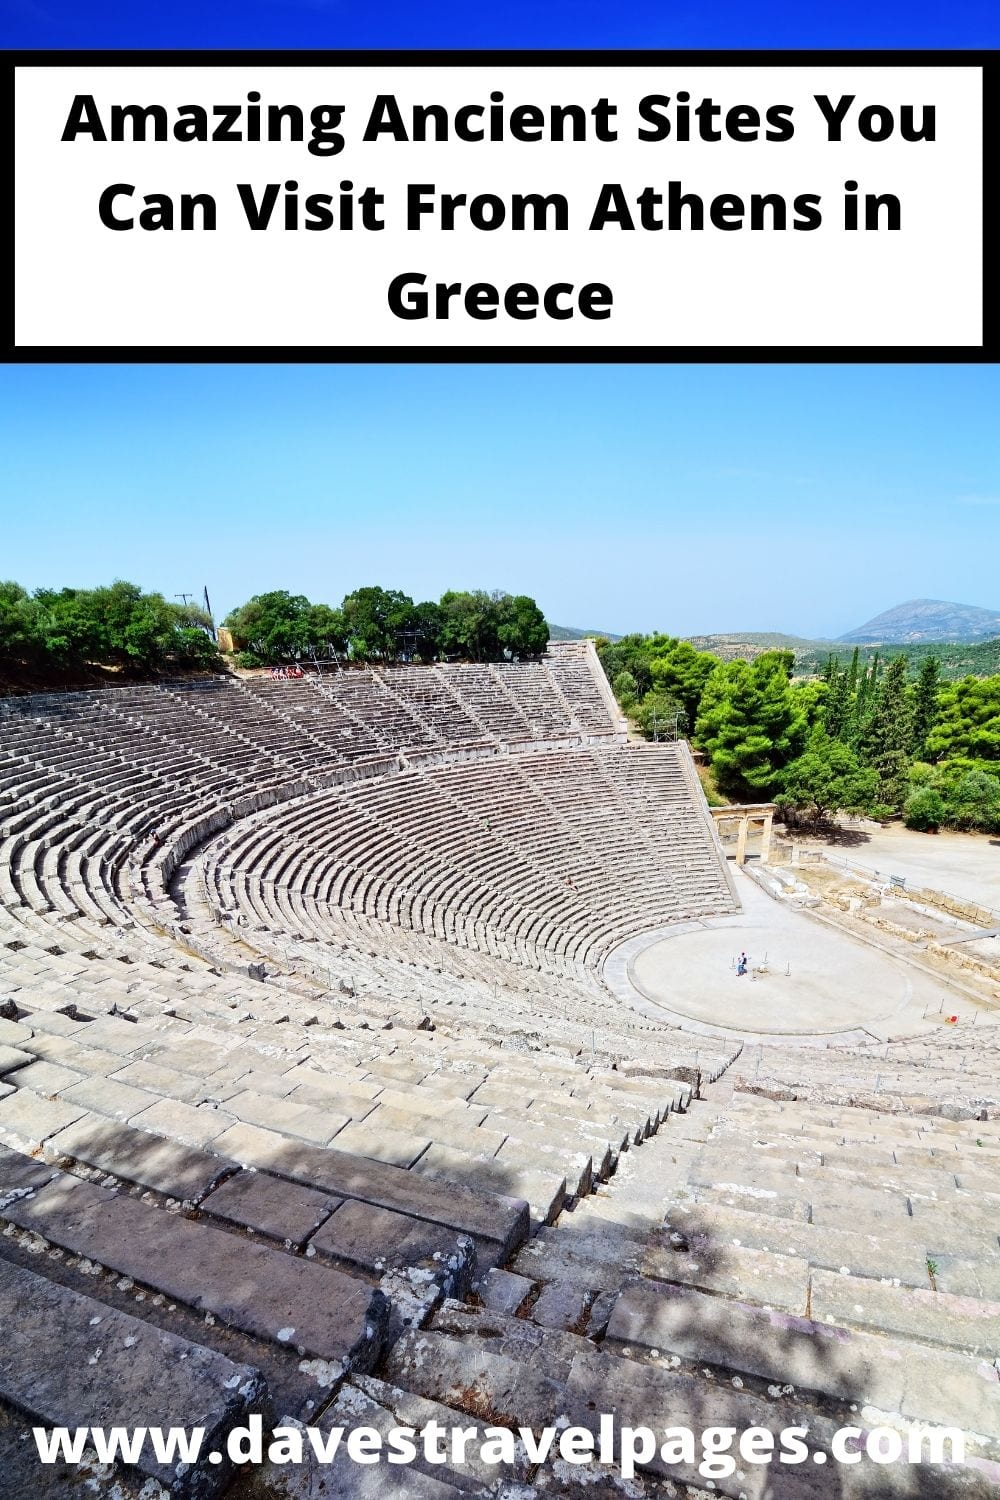 Ancient sites you can visit on a one day trip from Athens